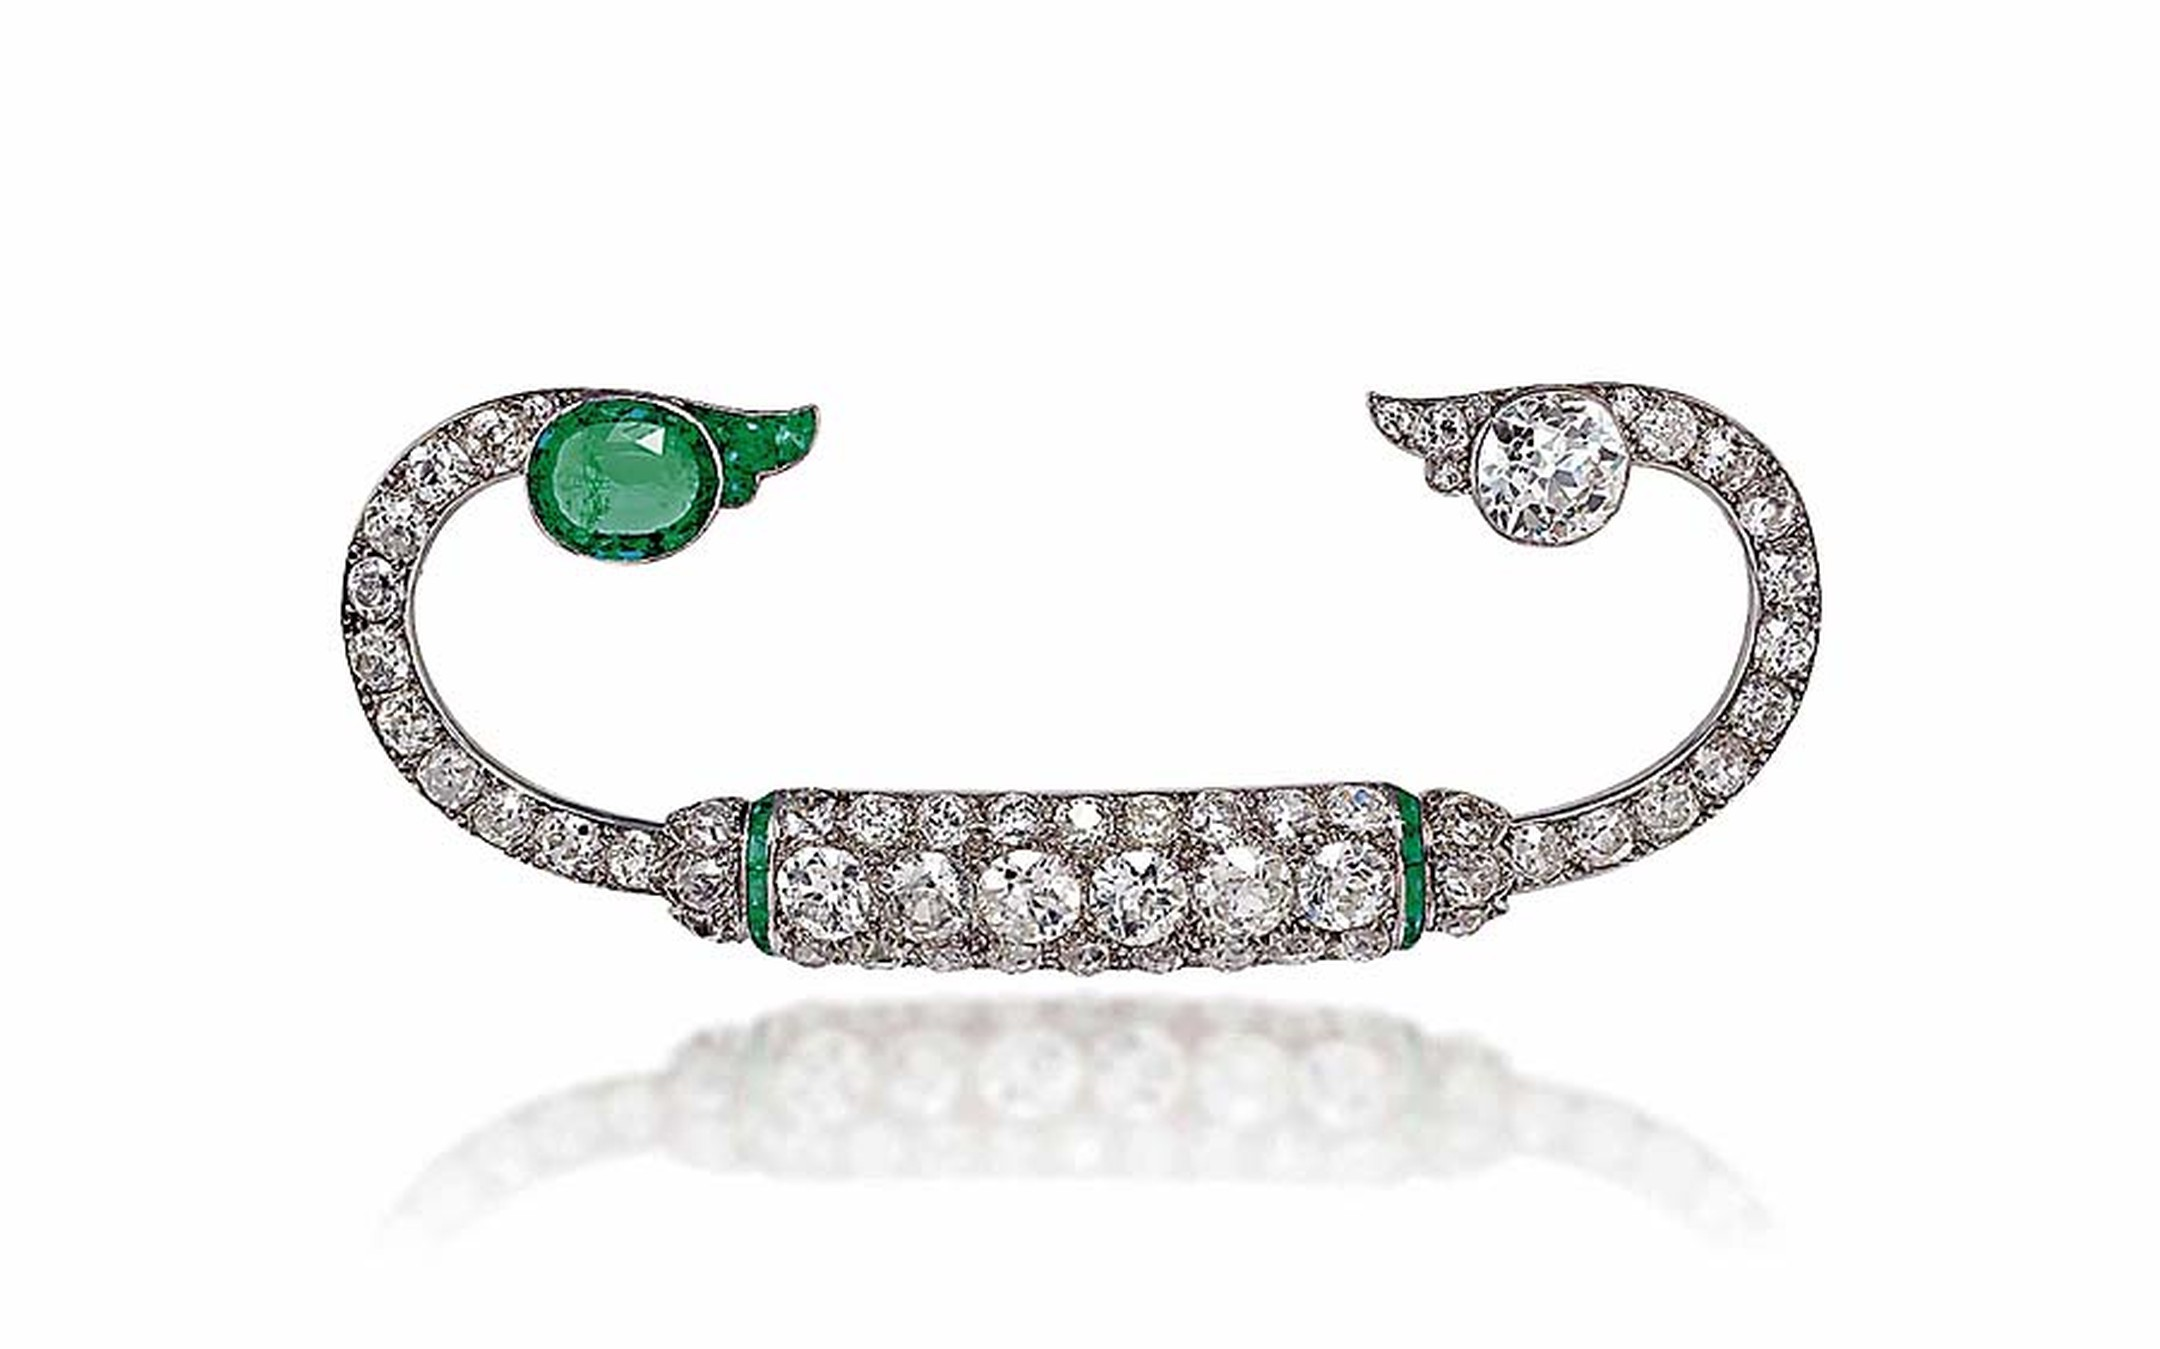 ChristiesLondonImportantJewelsauction005